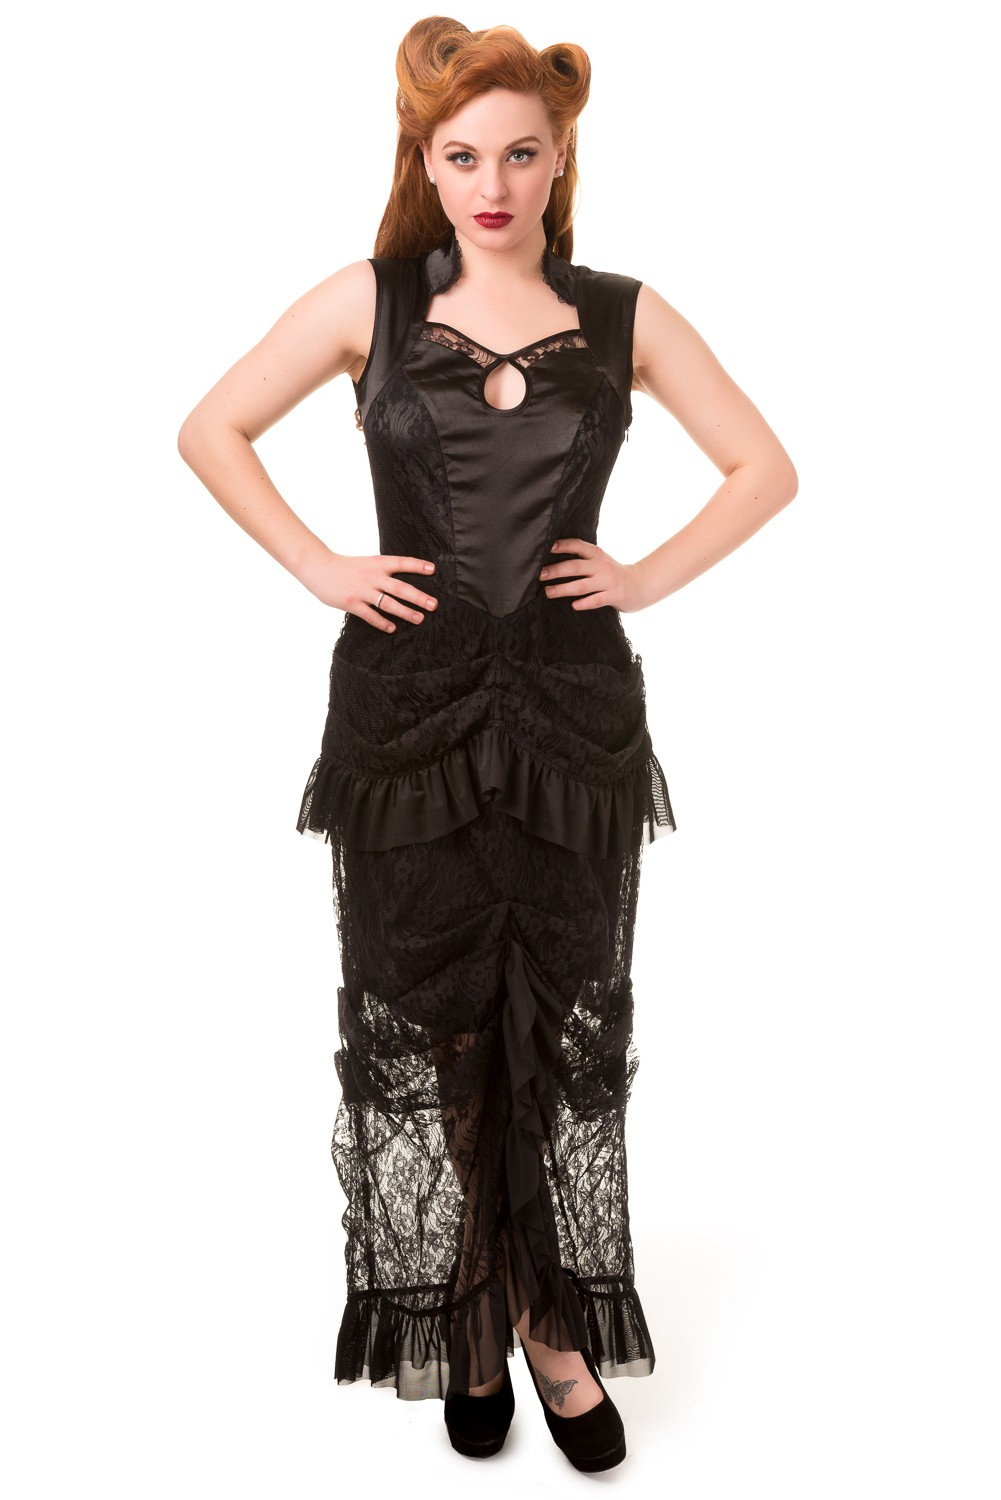 Banned Nevermind Gothic Maxi Dress | Banned Gothic Plus Size Prom ...